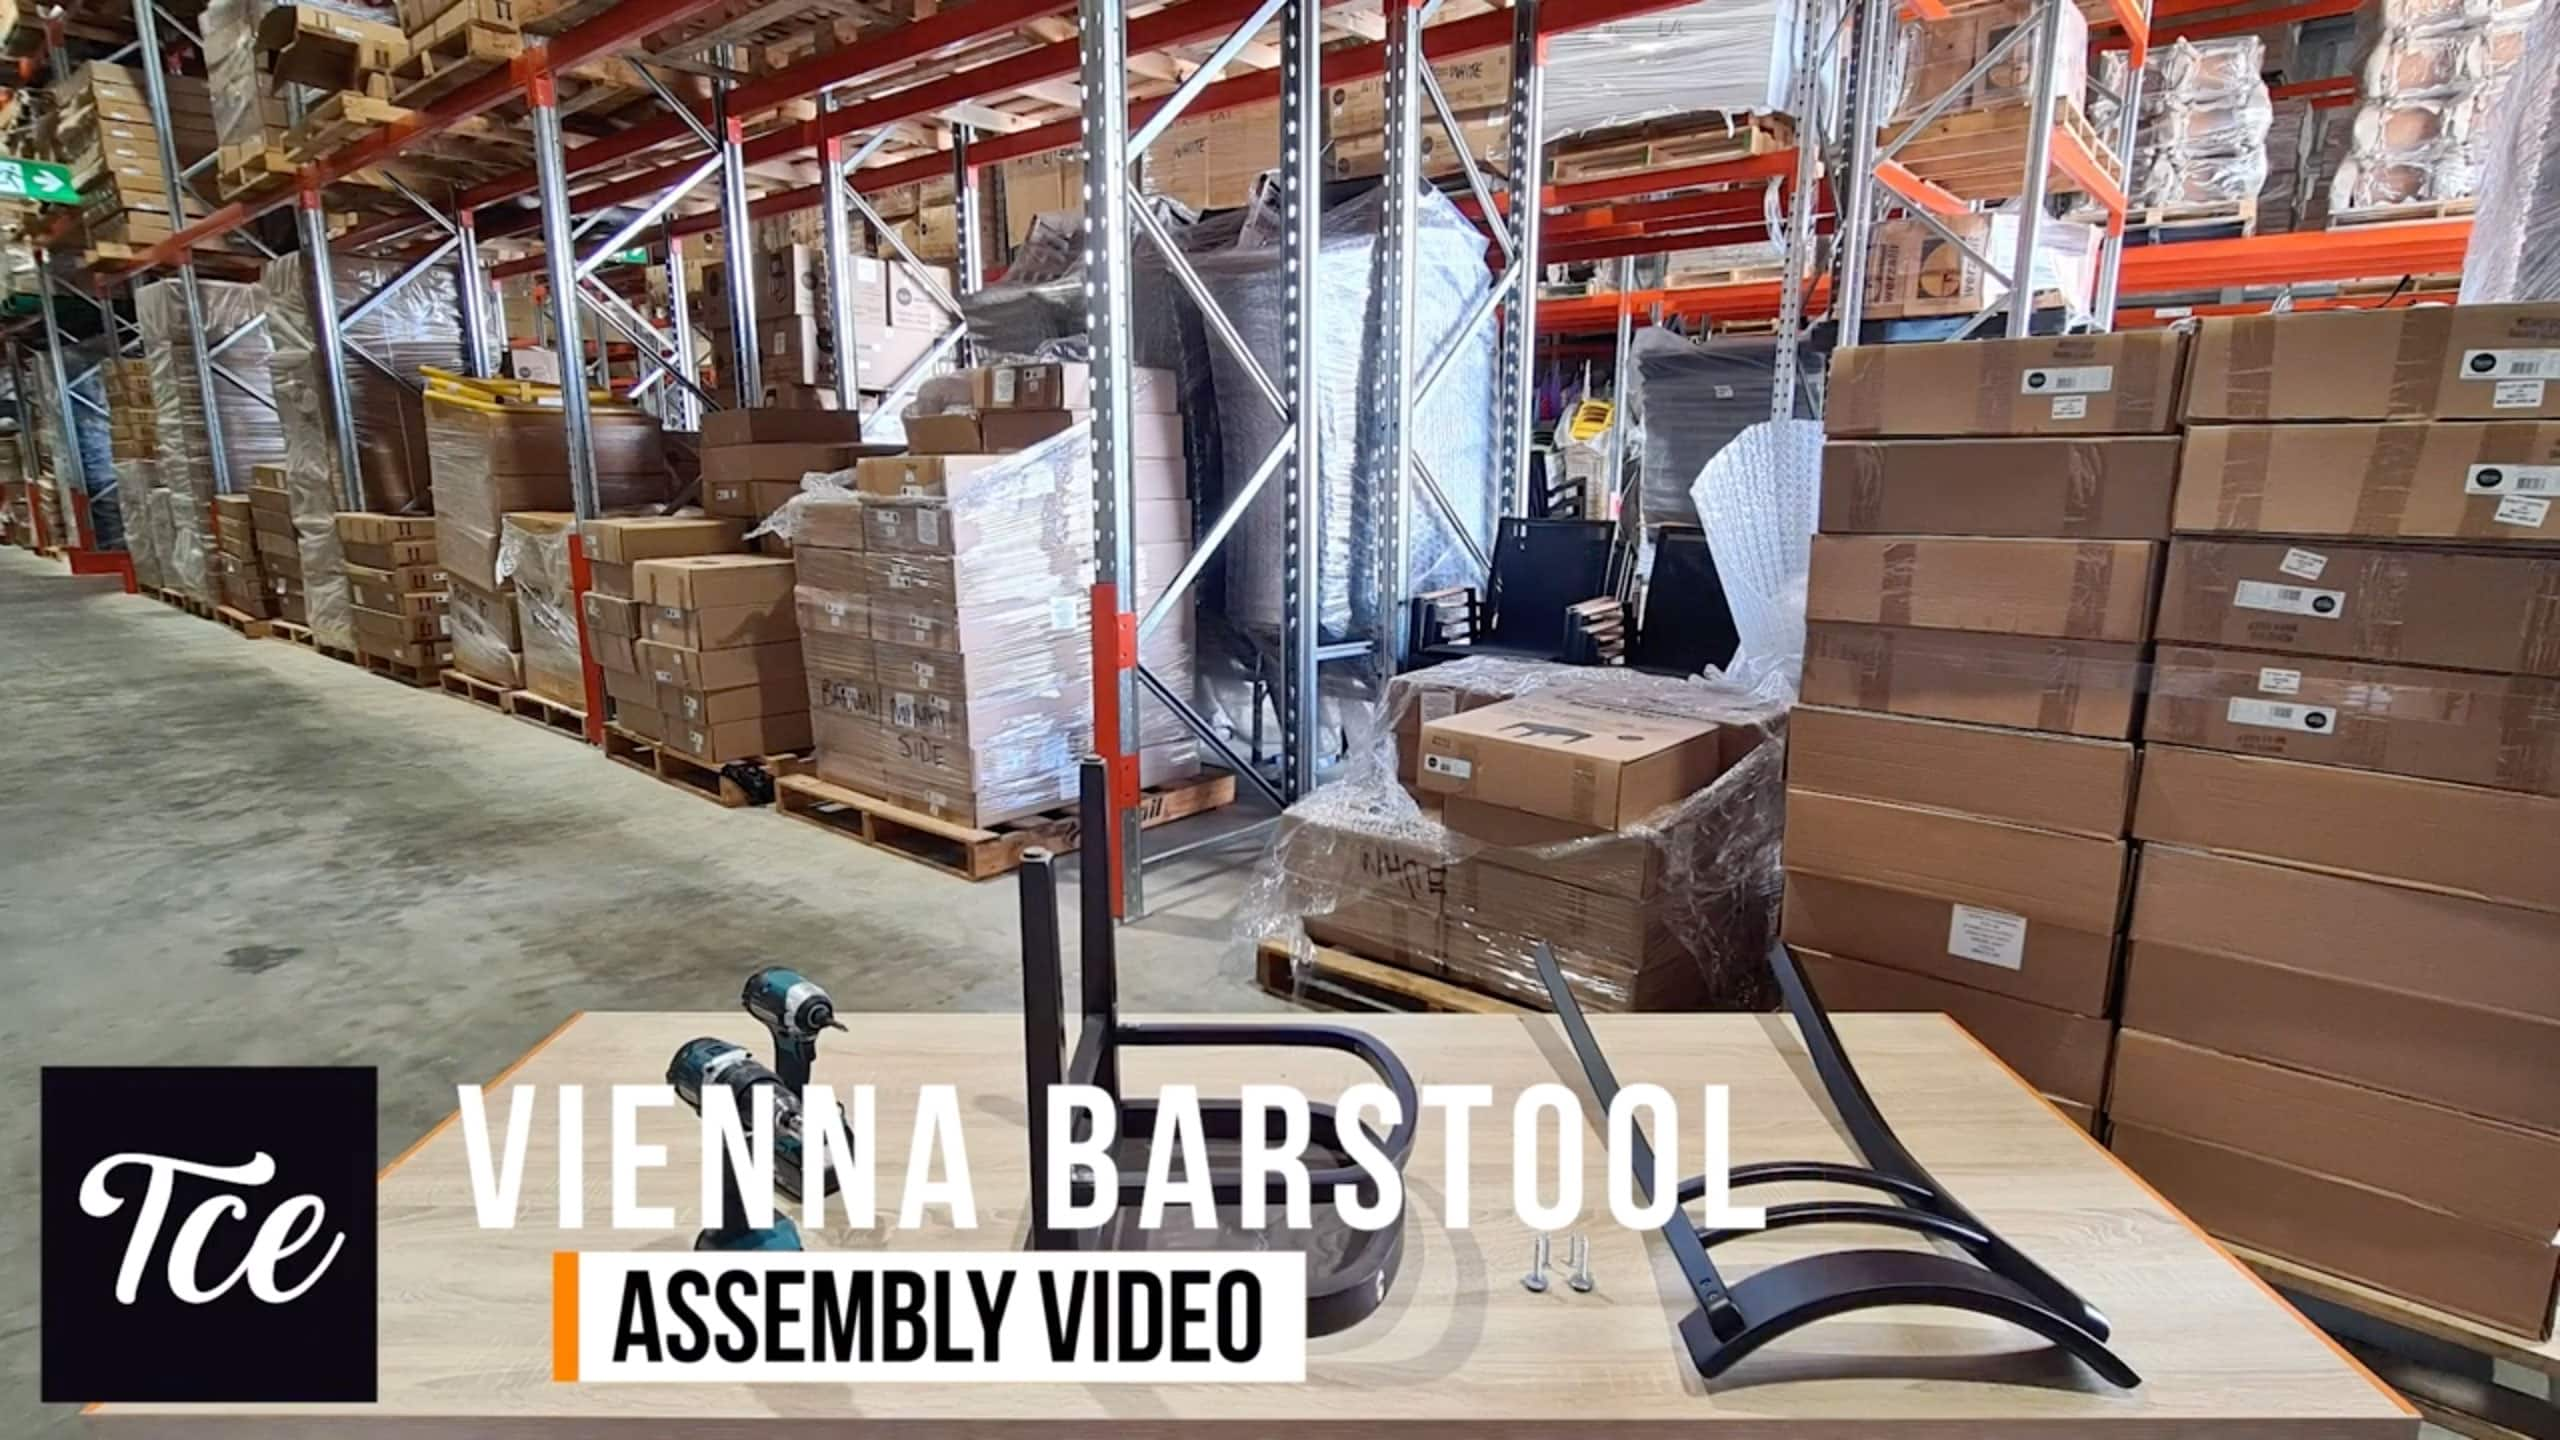 Assembly for the Vienna Barstool